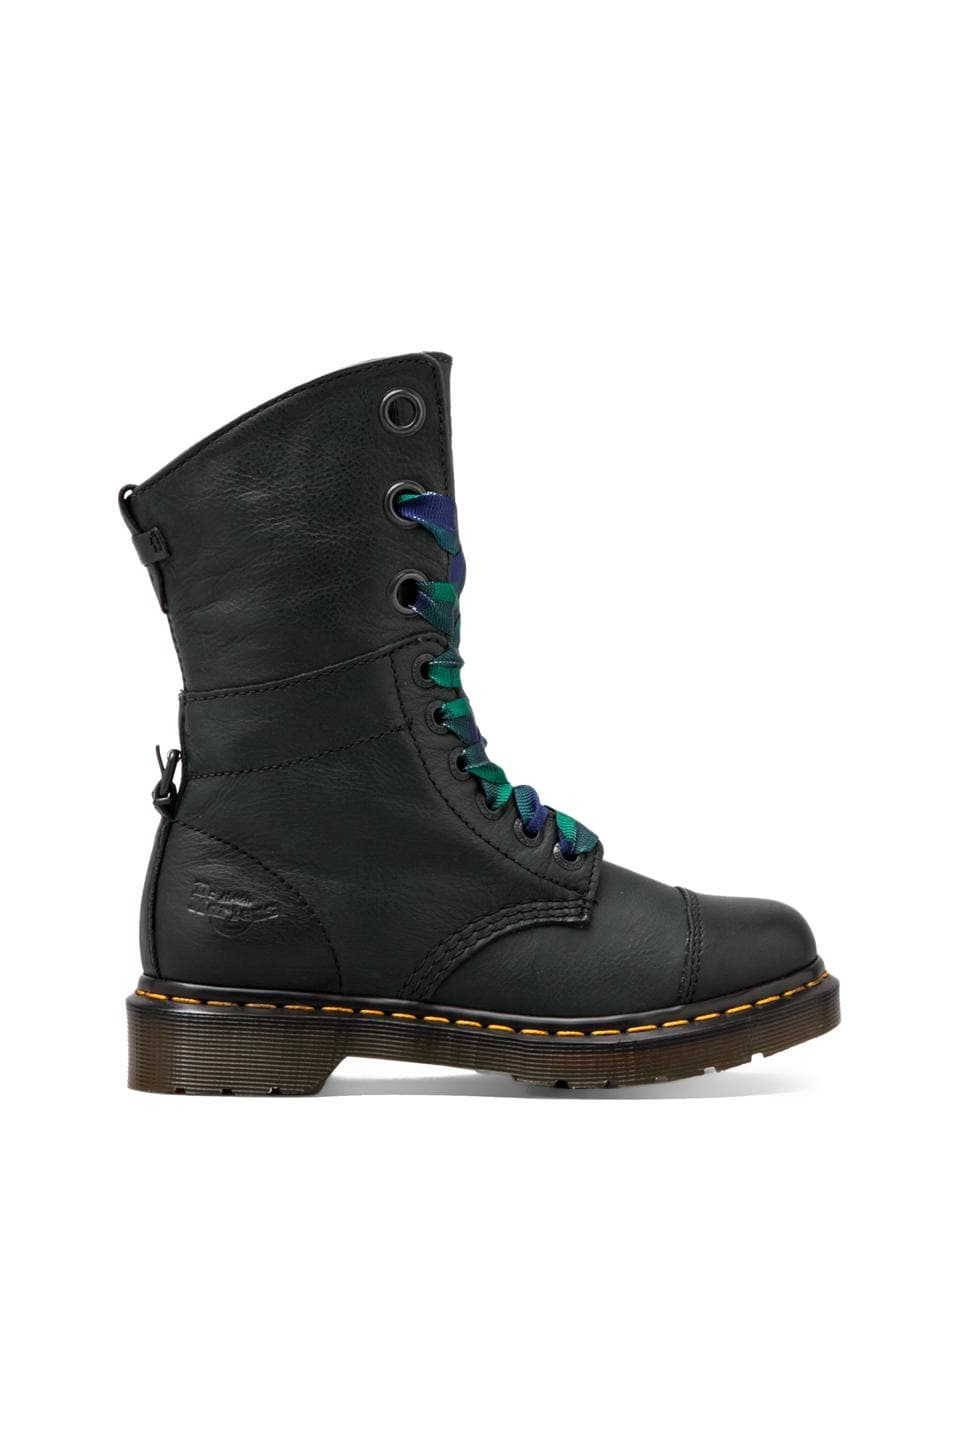 Dr. Martens Aimilie 9-Eye Toe Cap Boot in Black